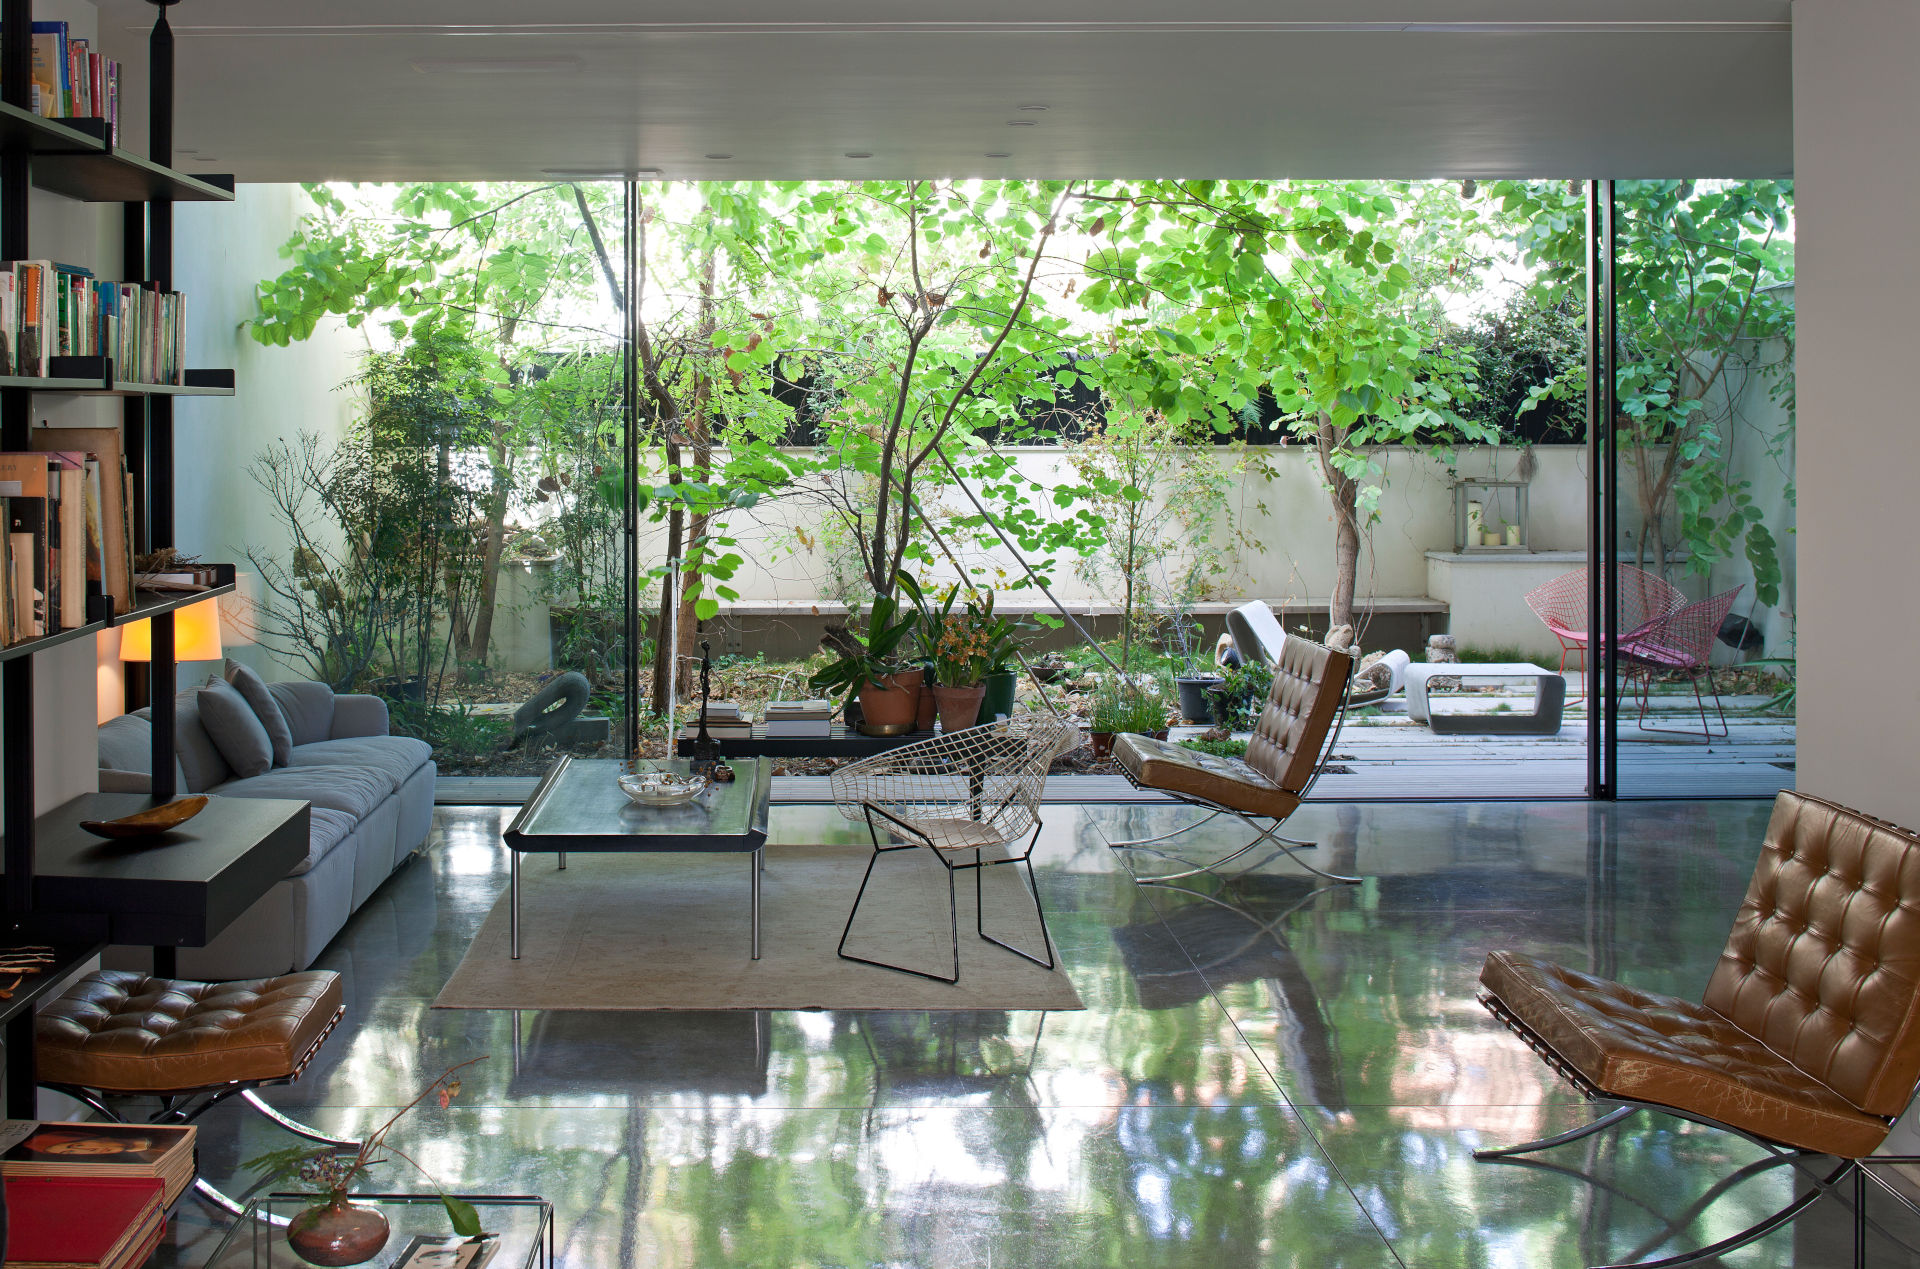 house-in-nature-slim-framed-sliding-glass-doors